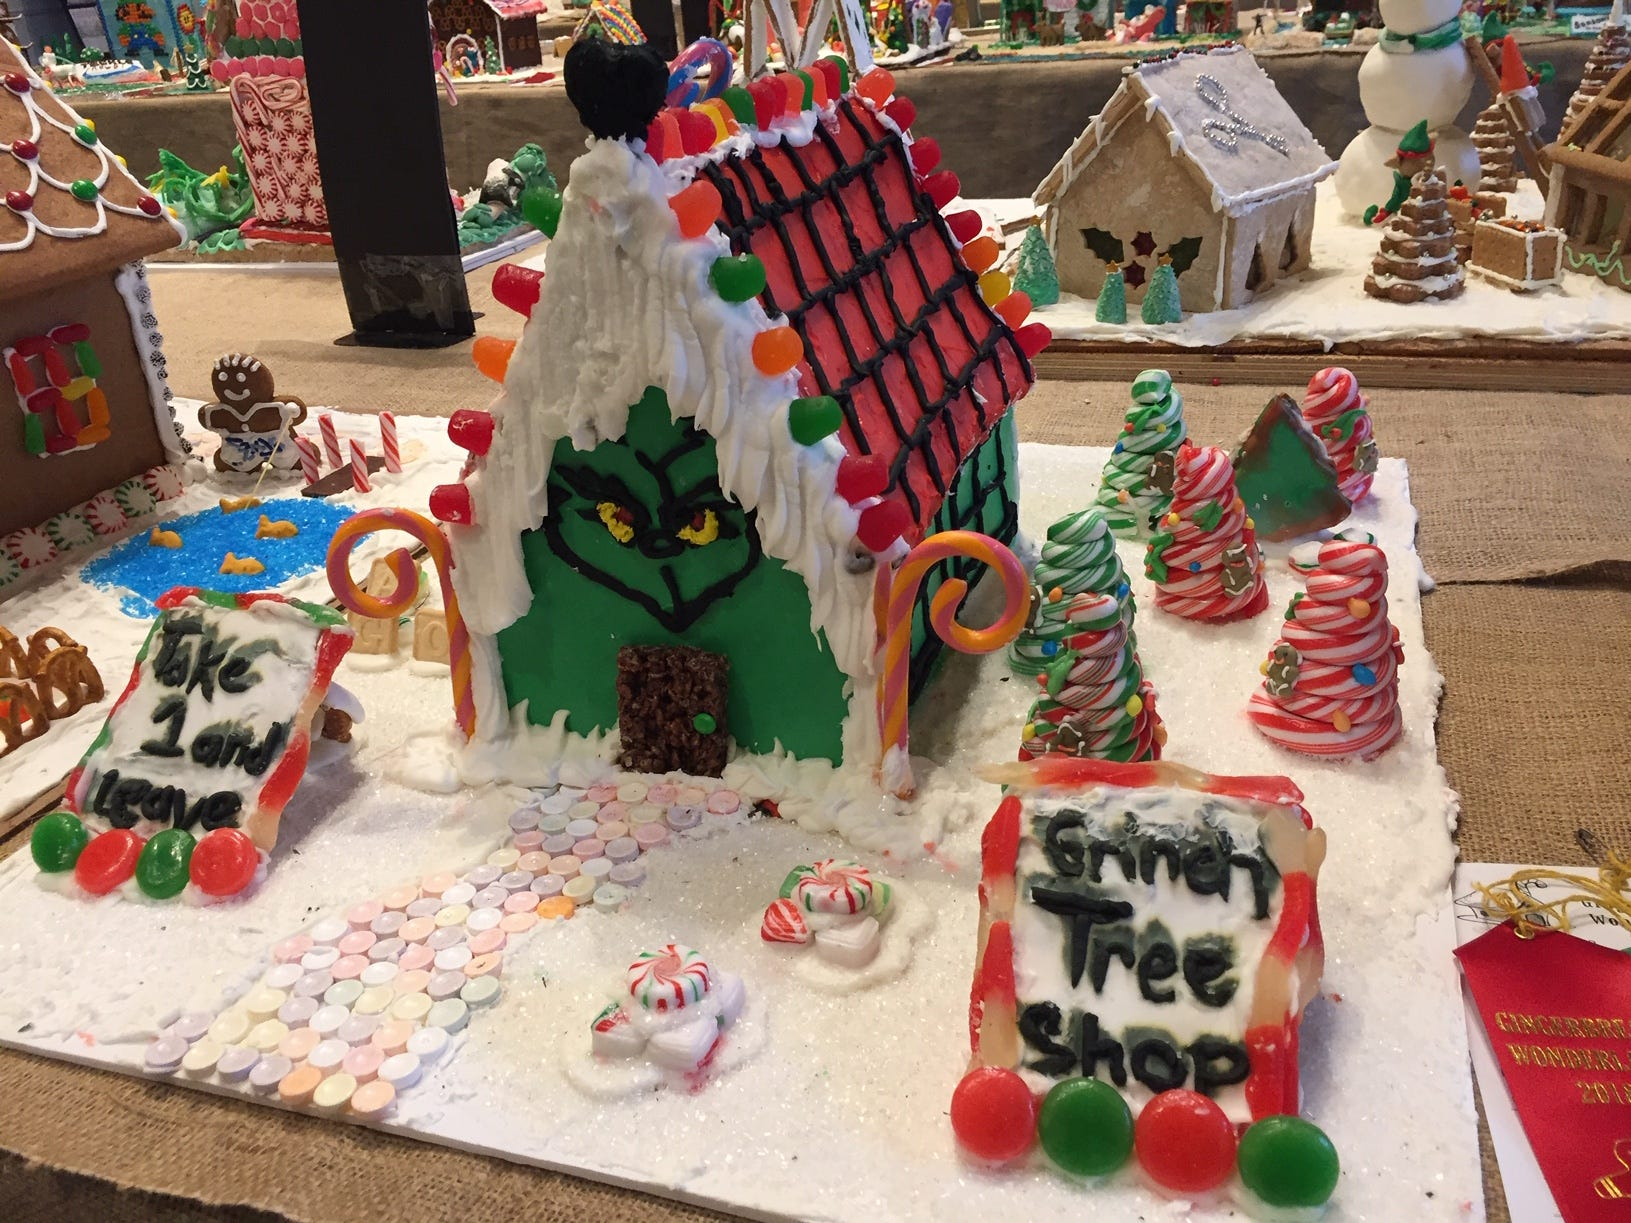 """The Grinch Christmas Tree Shoppe"" by the Marololi Family of Parsippany at the 2018 Gingerbread Wonderland at the Frelinghuysen Arboretum. Family category."